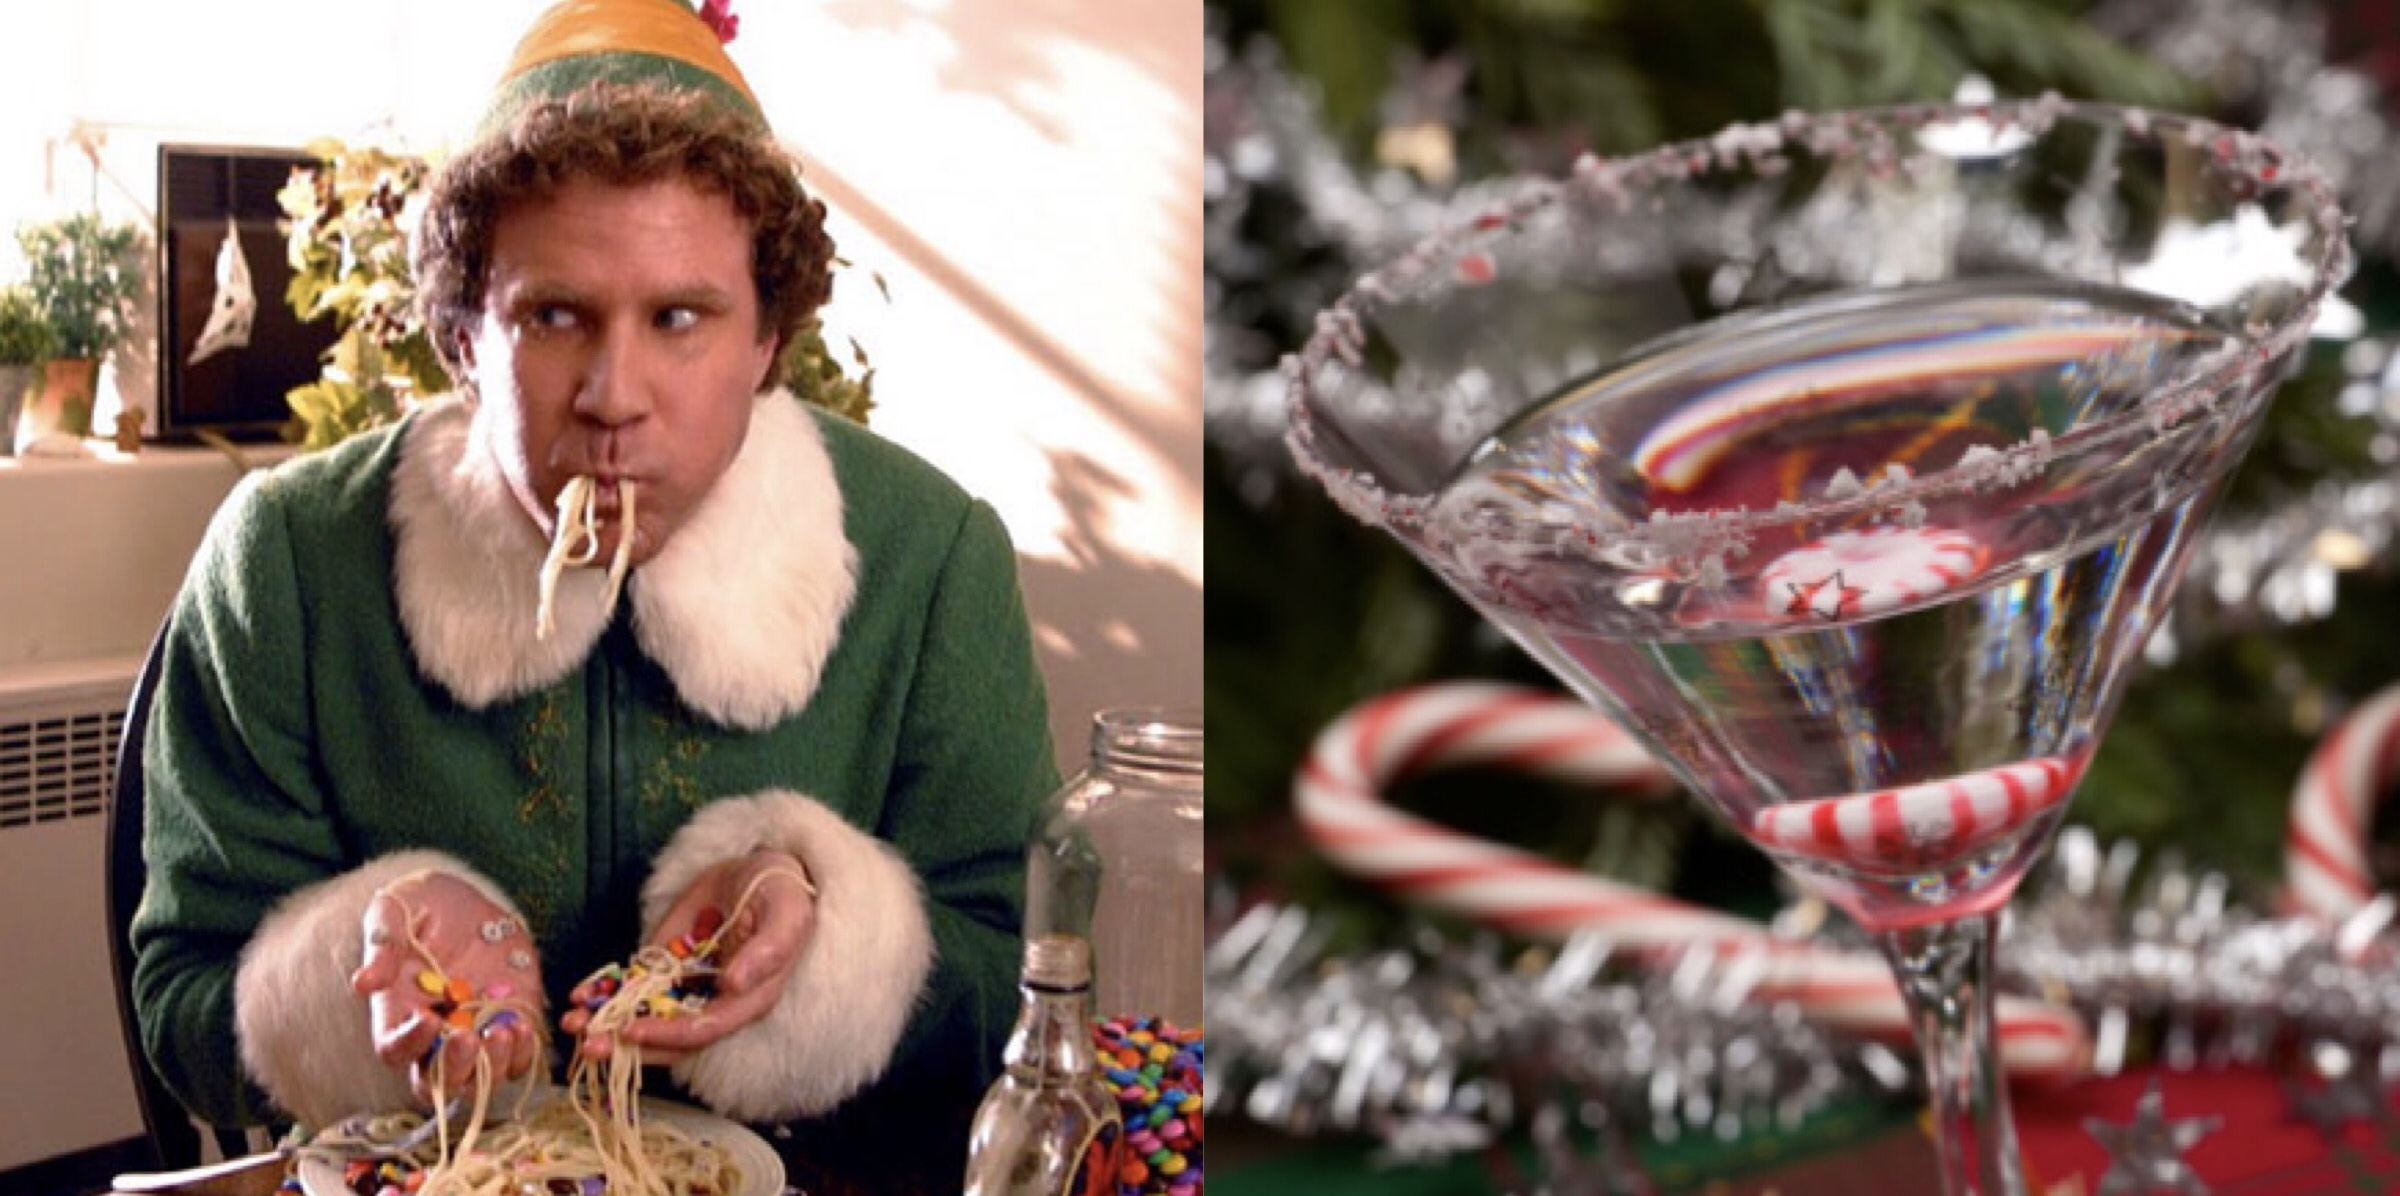 'Elf' and a Candy Cane Cocktail